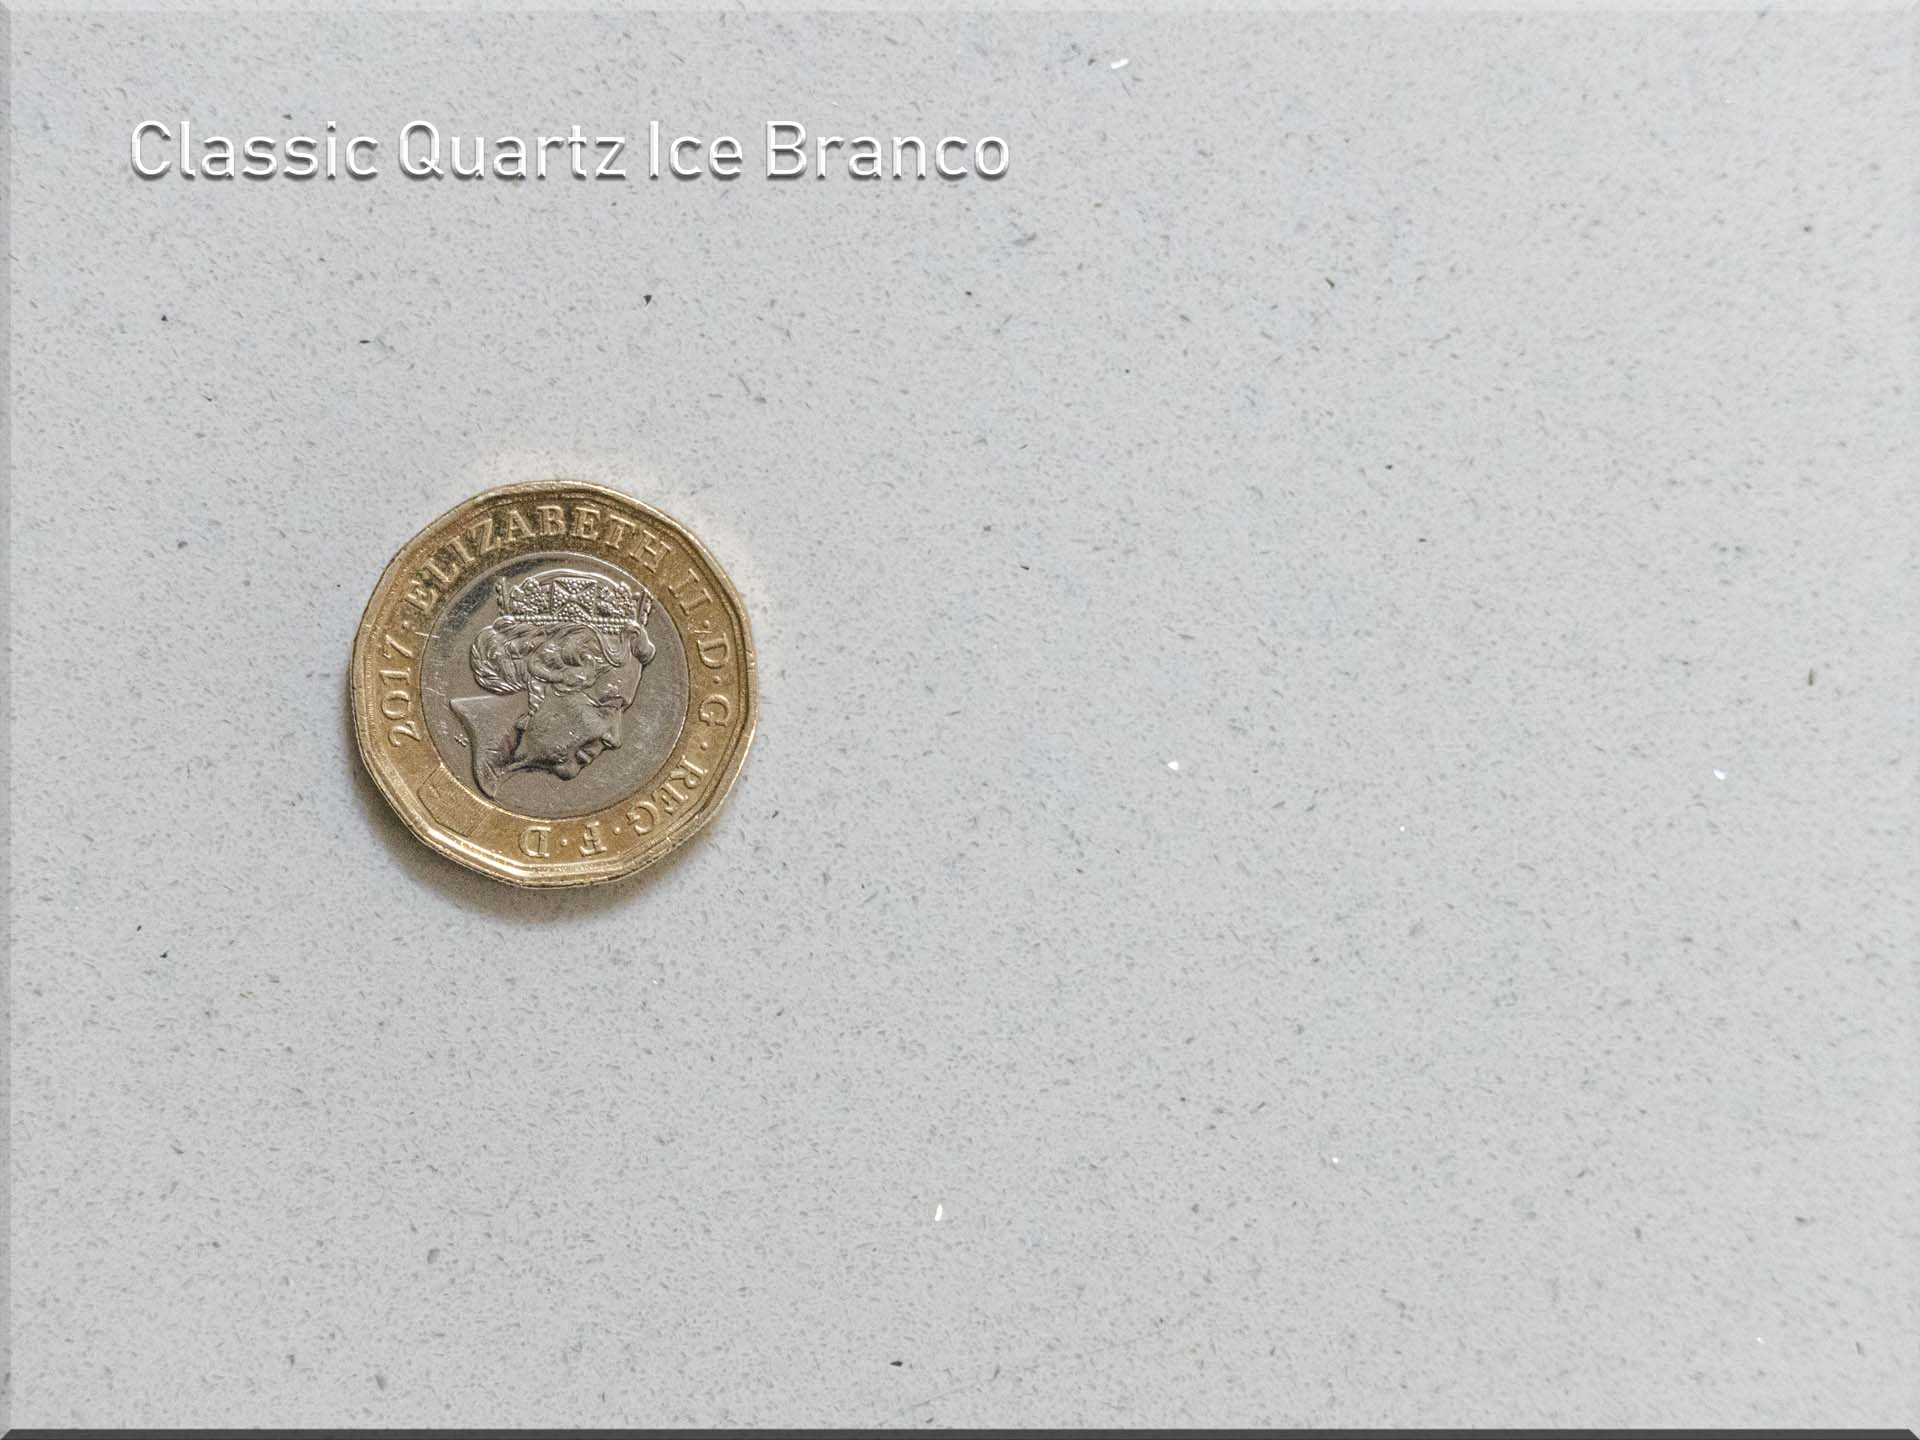 classic quartz ice branco small sparkly quartz worktops subtle special offer july 2019 164829